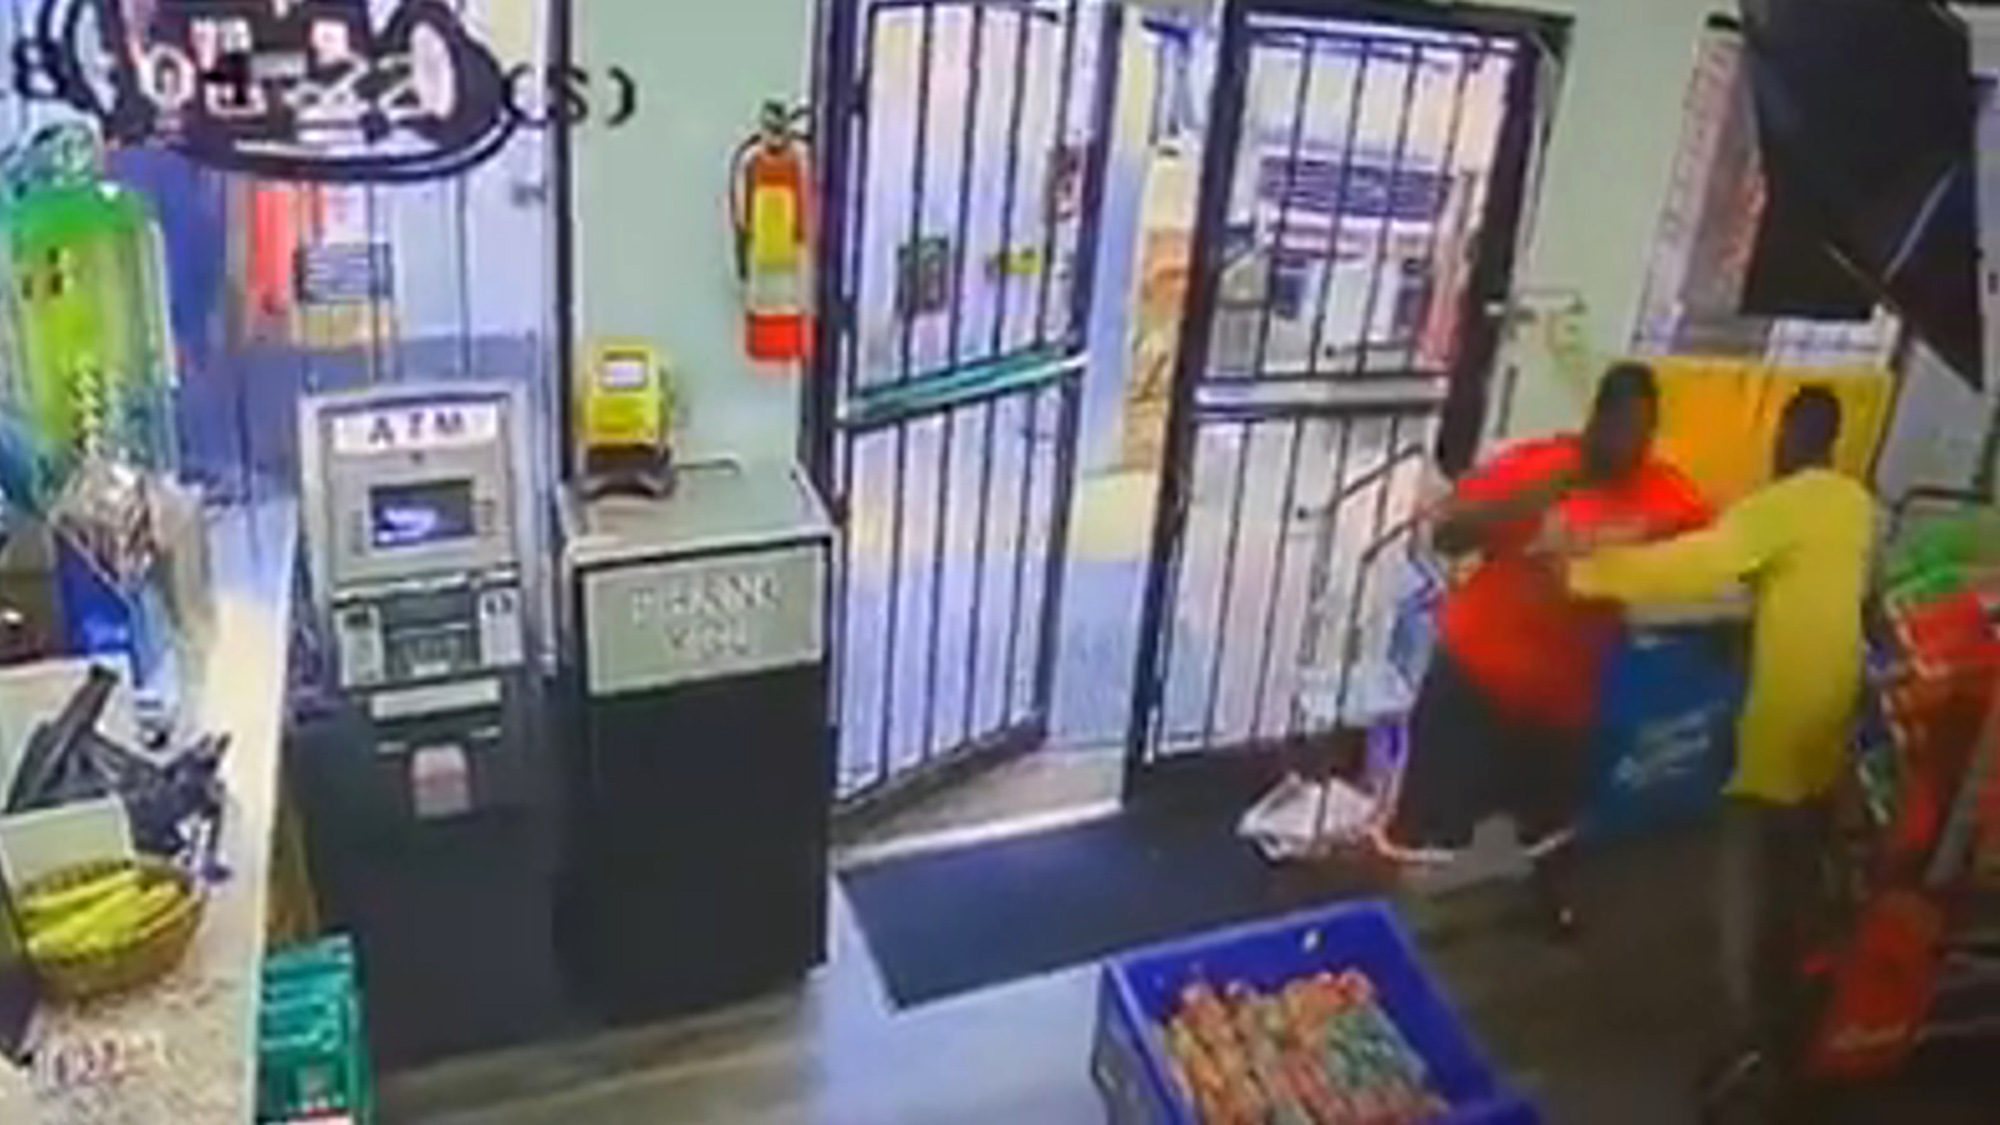 VIDEO: Gunman Shoots Shopper in U.S. Convenience Store